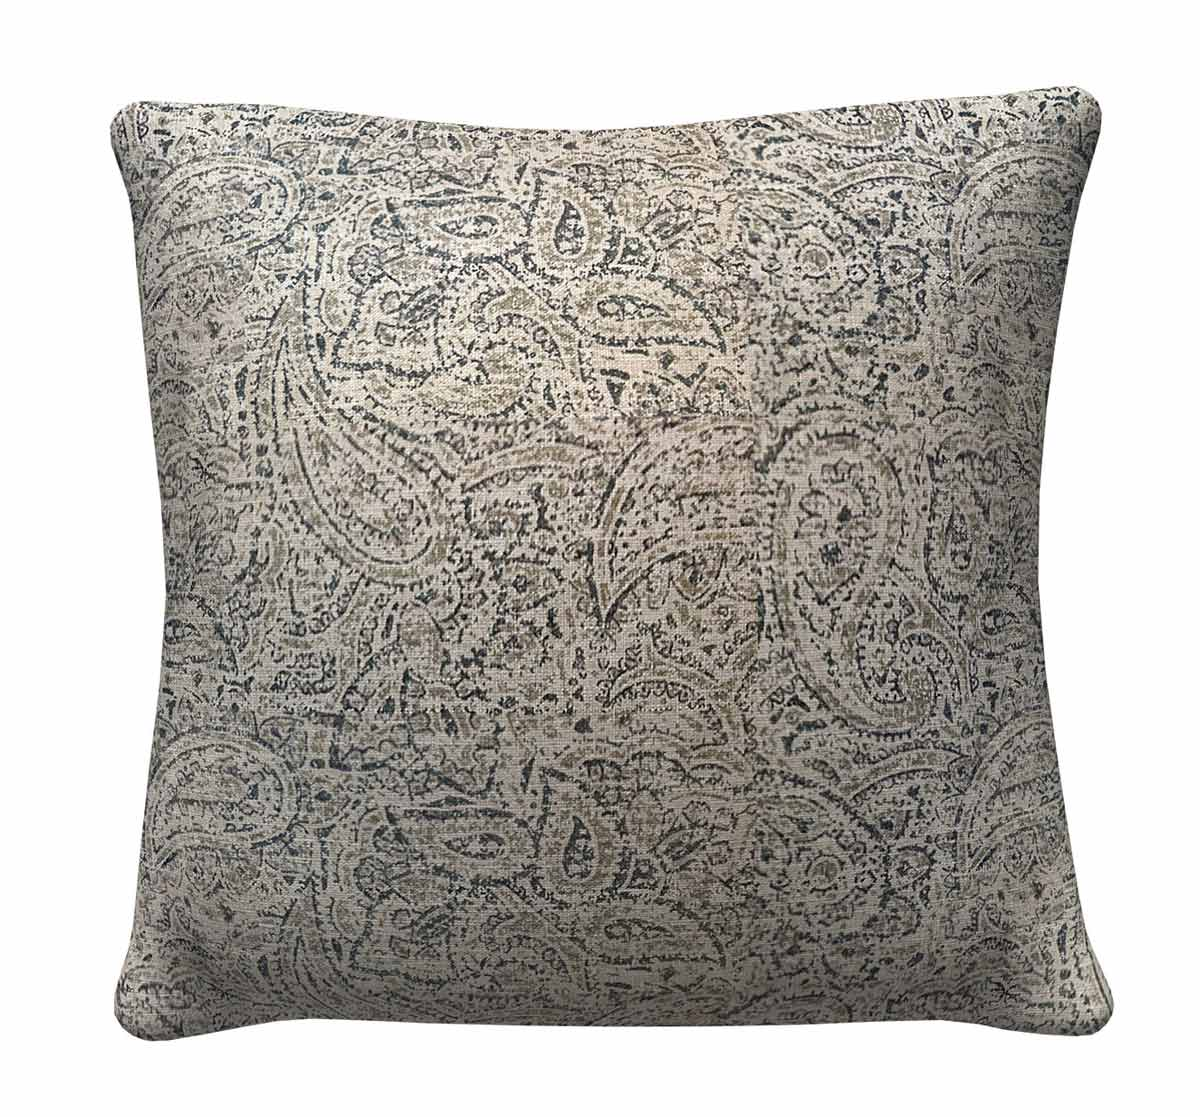 905322 Neutral Paisley Pillow